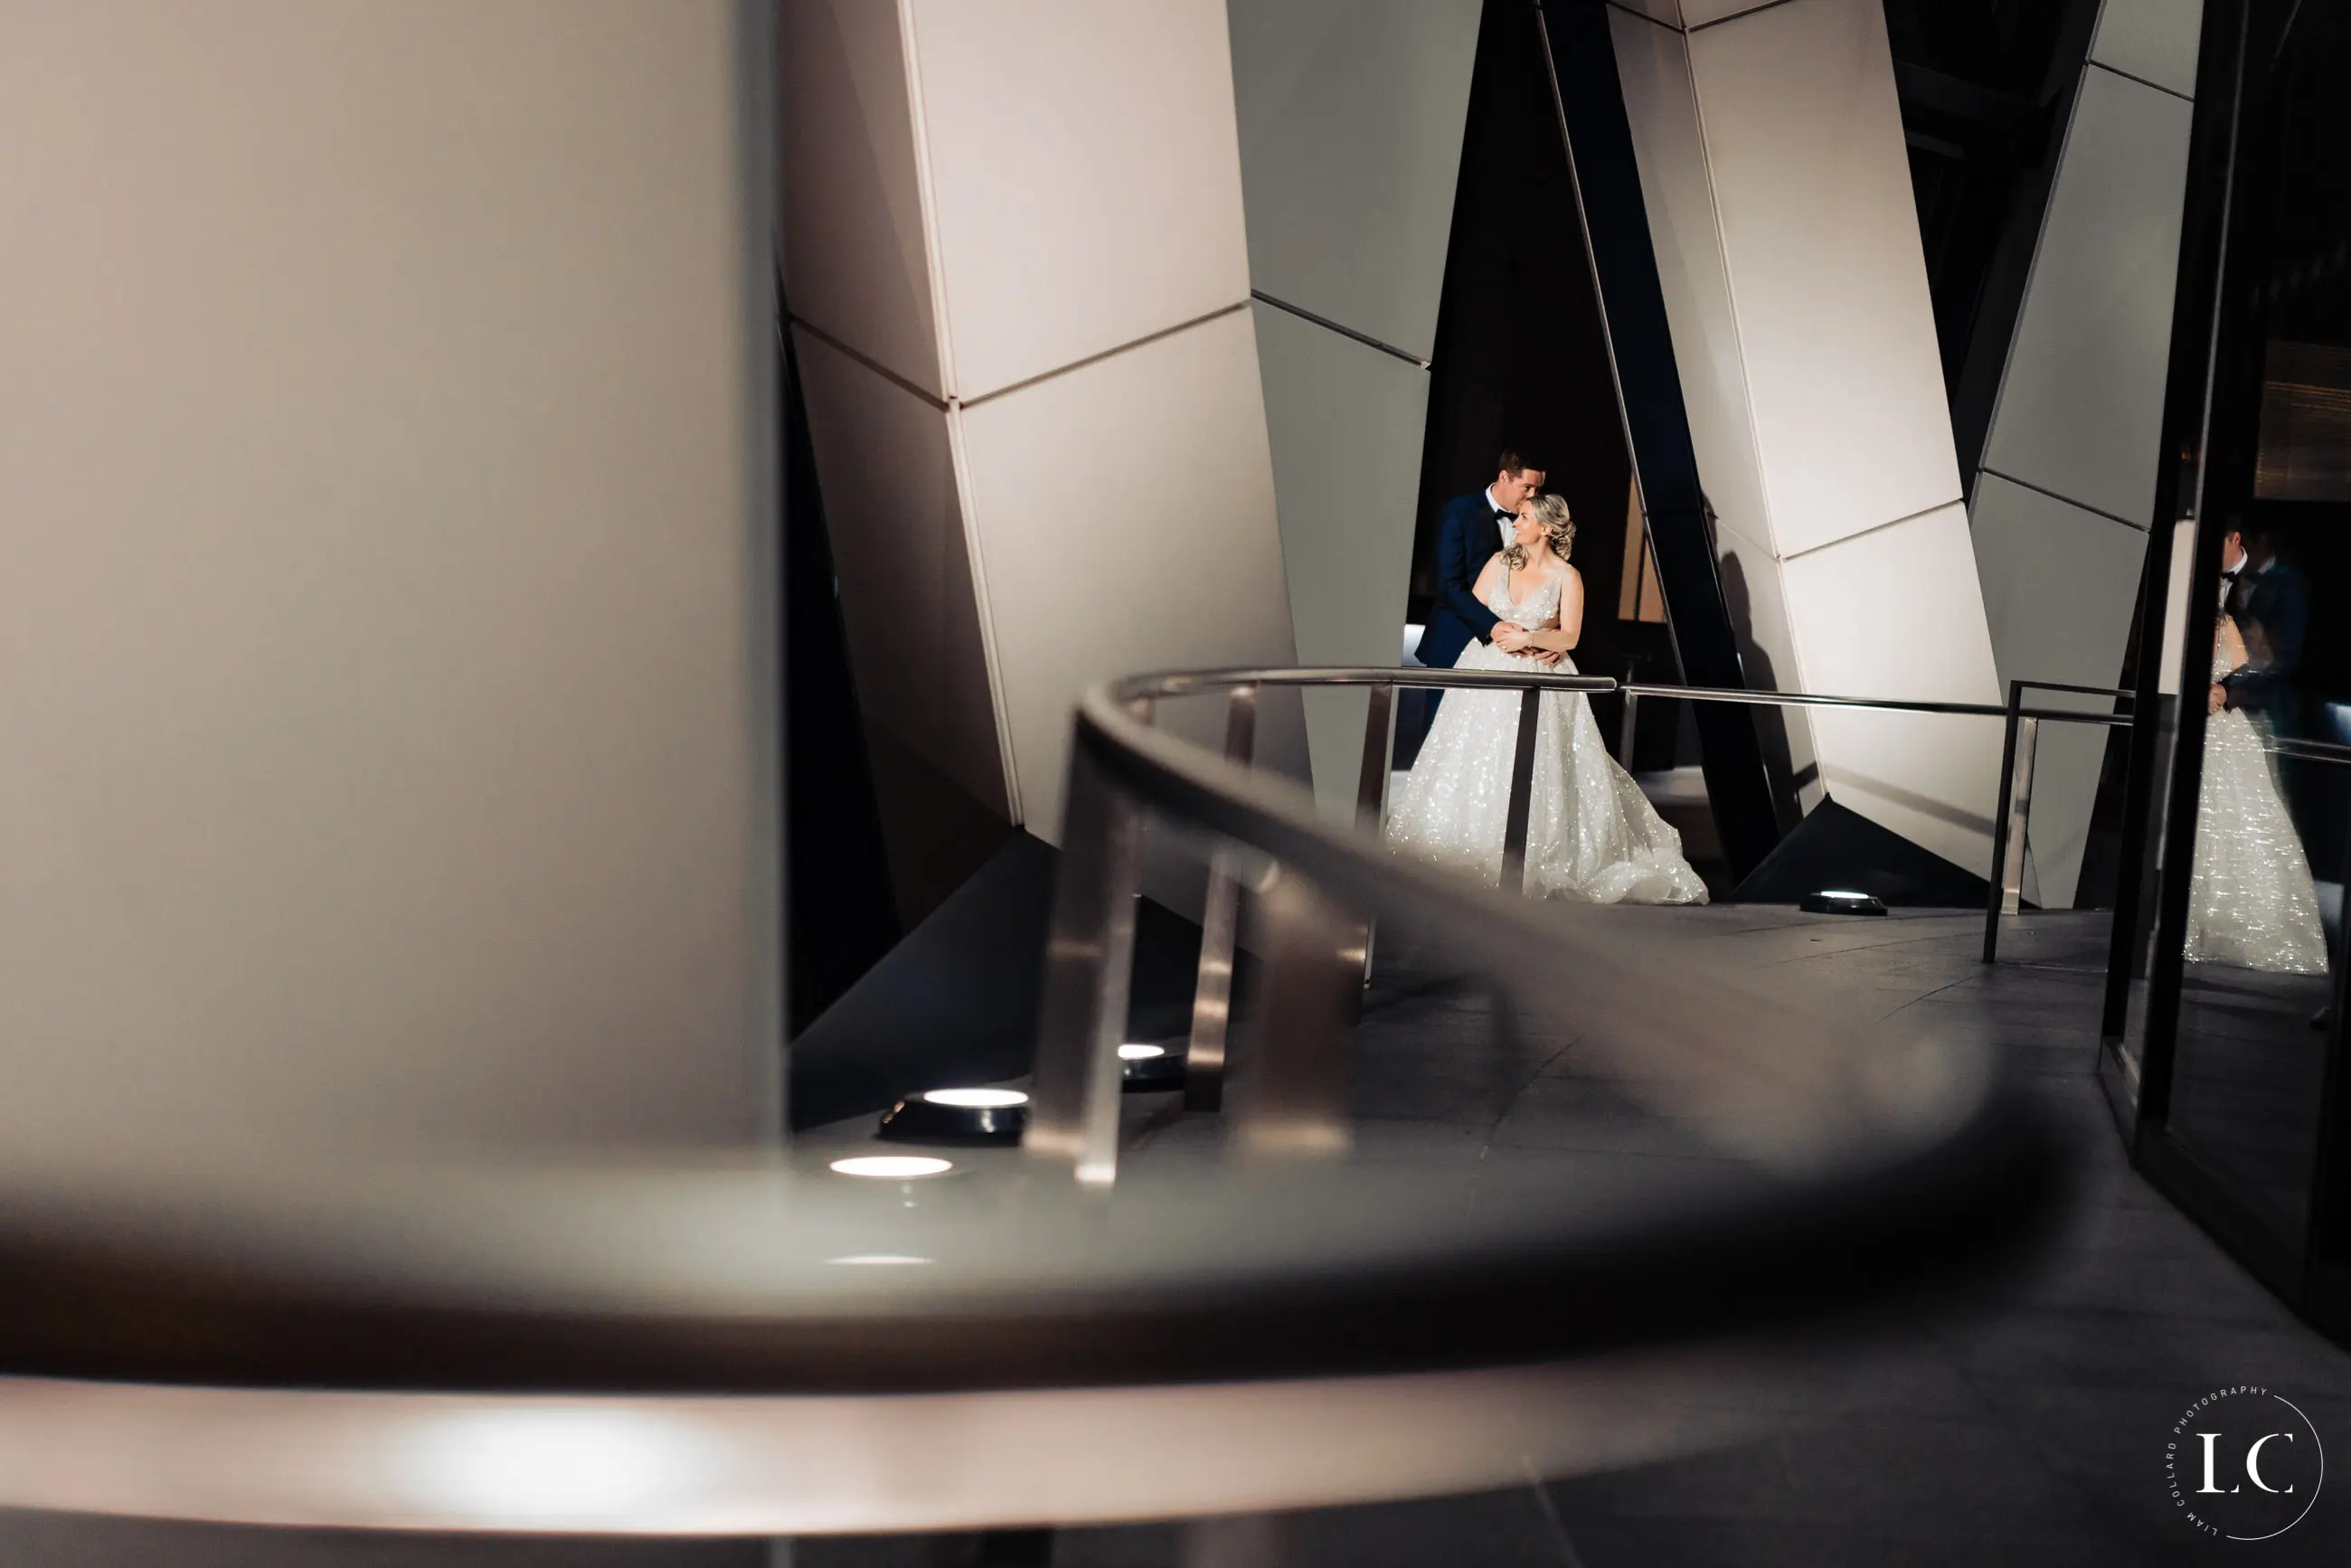 Bride at staircase